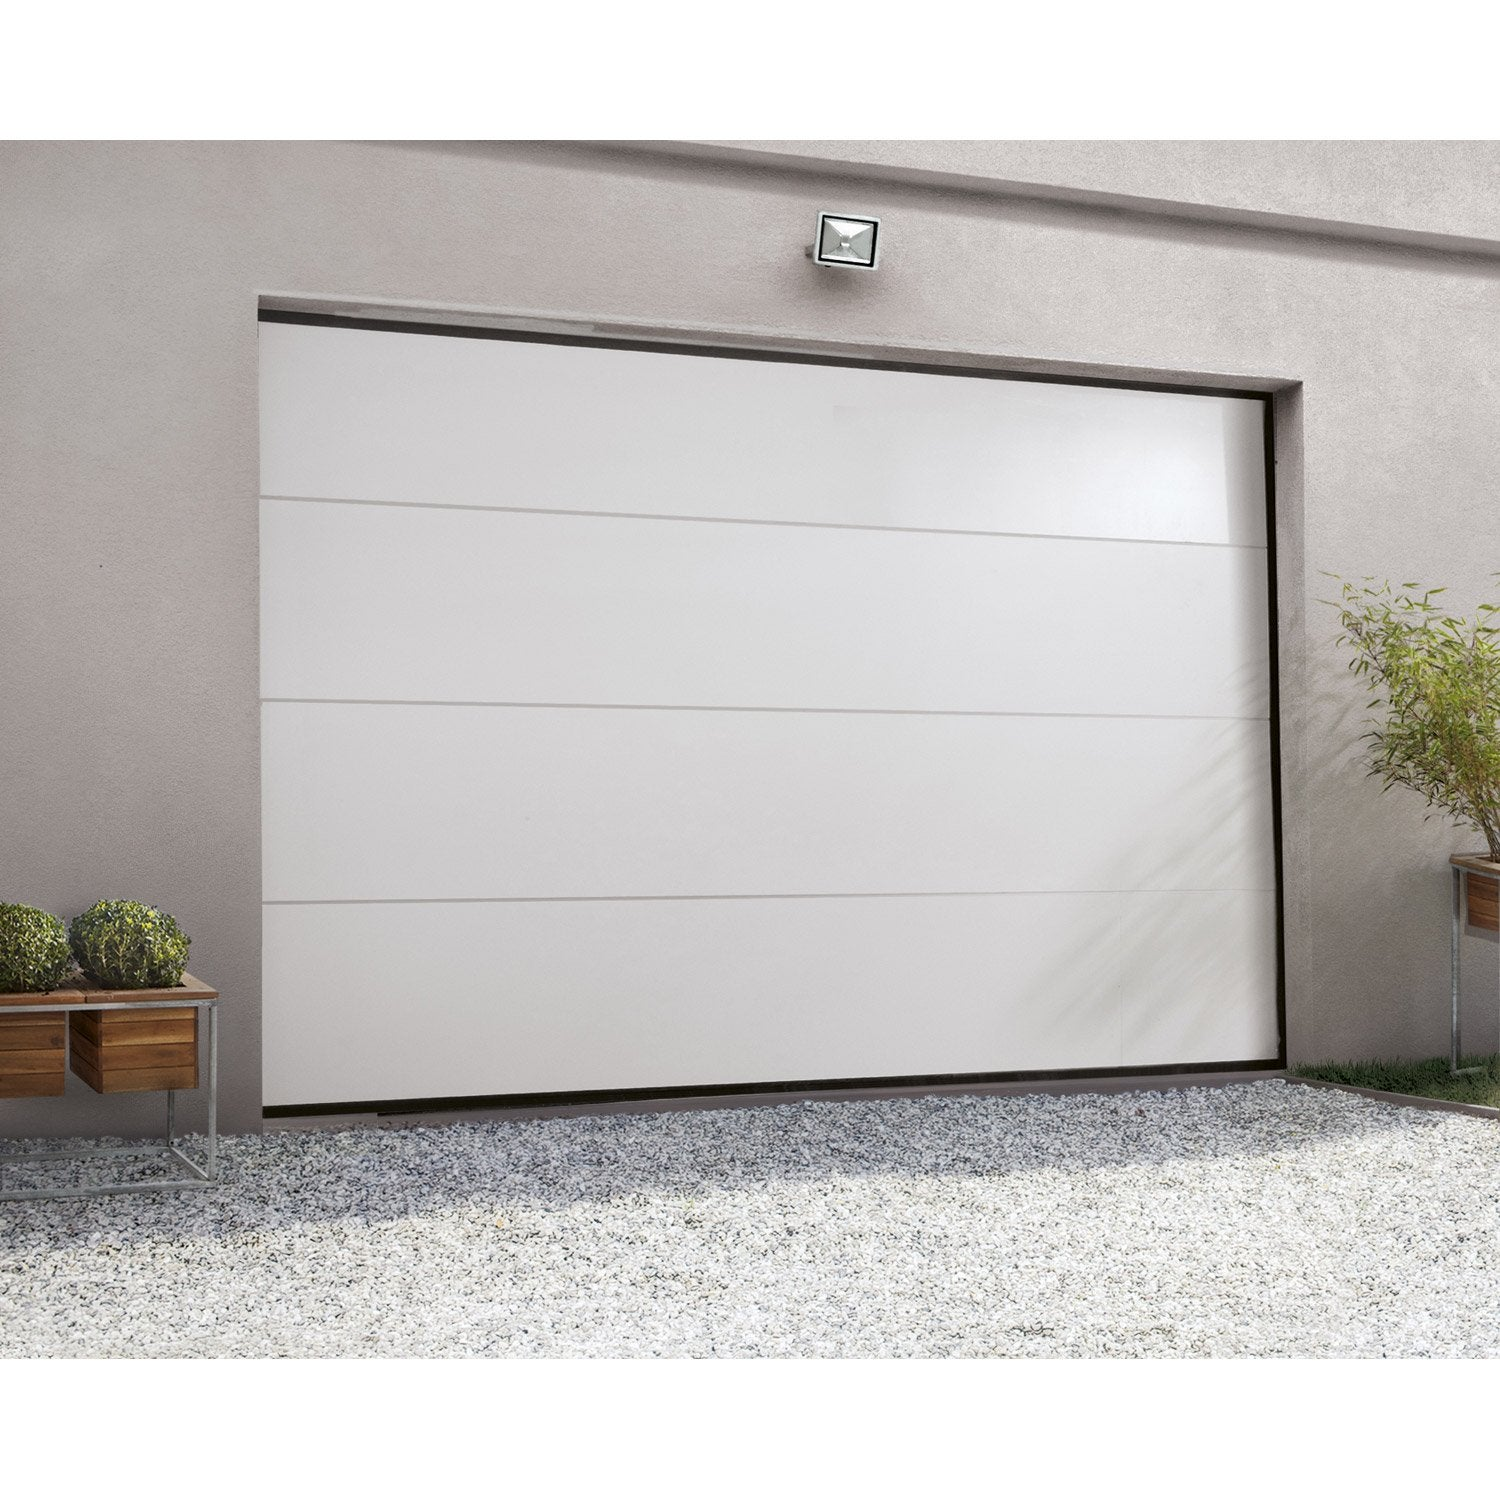 Porte de garage sectionnelle motoris e artens essentiel h for Porte de garage moss